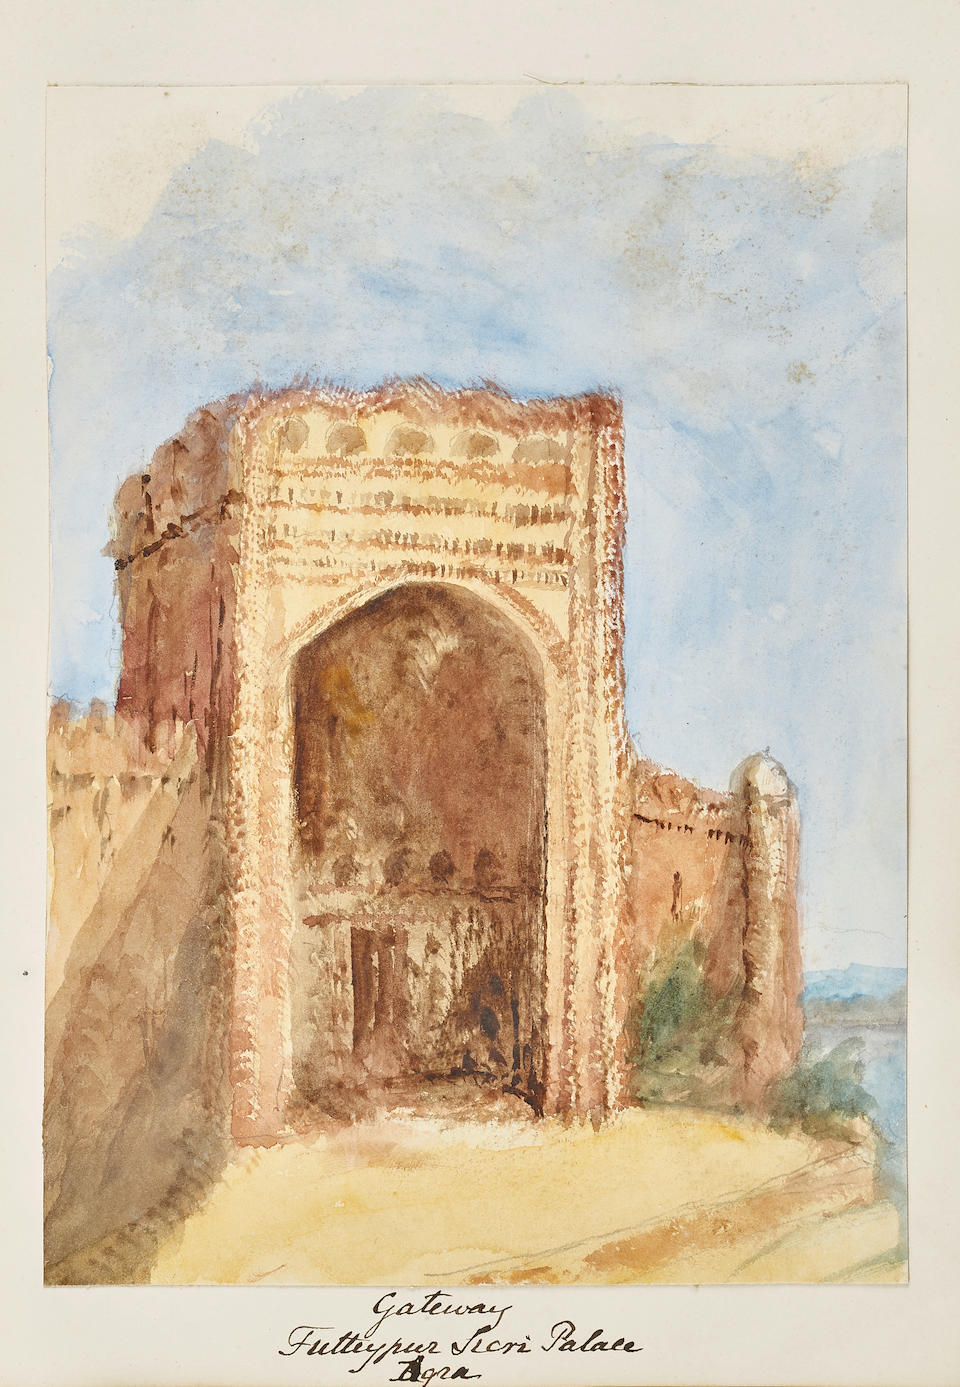 VIEWS AND PORTRAITS OF INDIA IN WATERCOLOR.  An album of 45 original watercolors, on paper by C. Wilbraham,